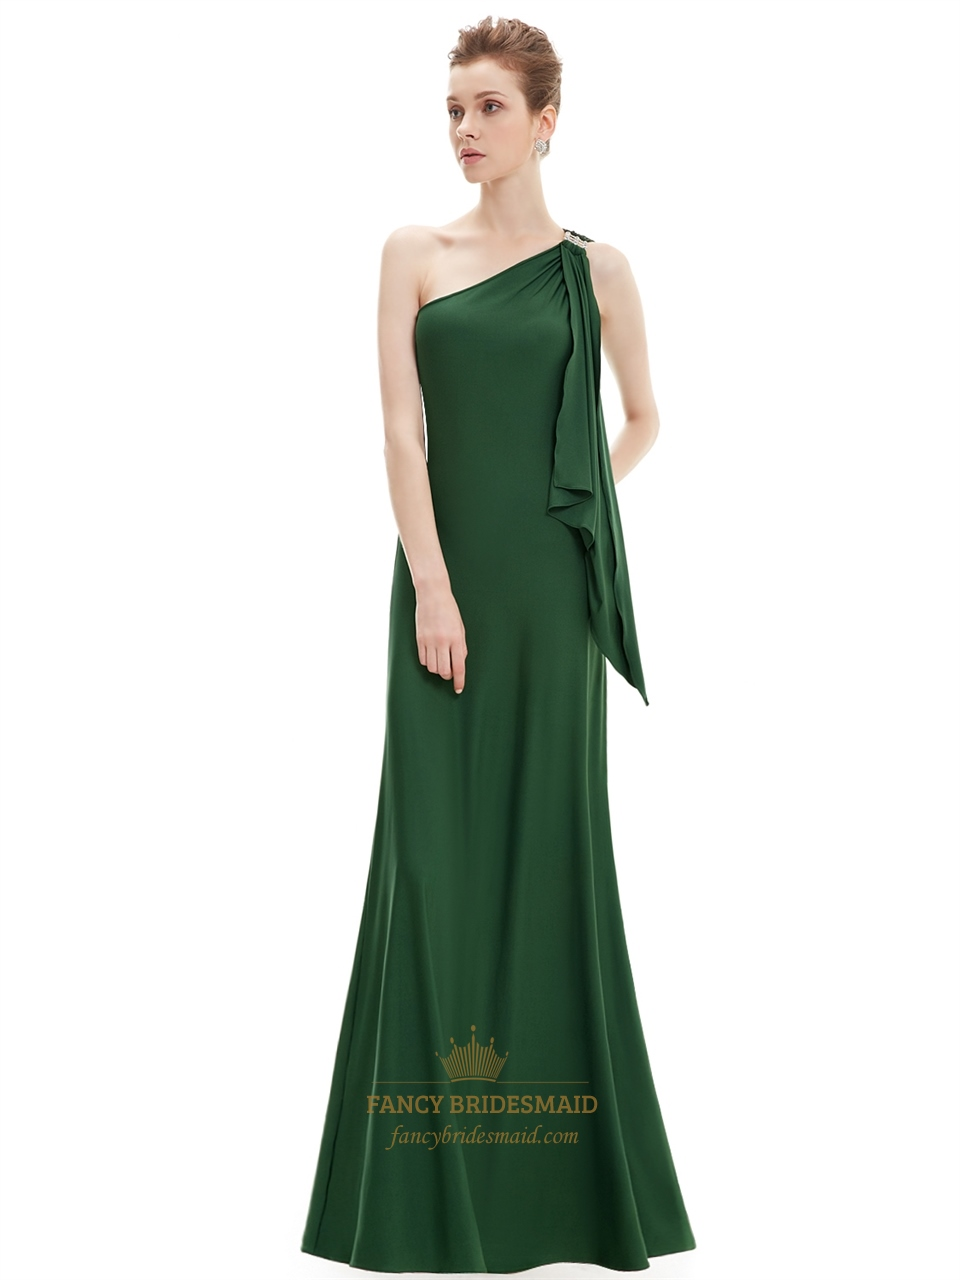 Emerald Green Bridesmaid Dresses  Vampal Dresses